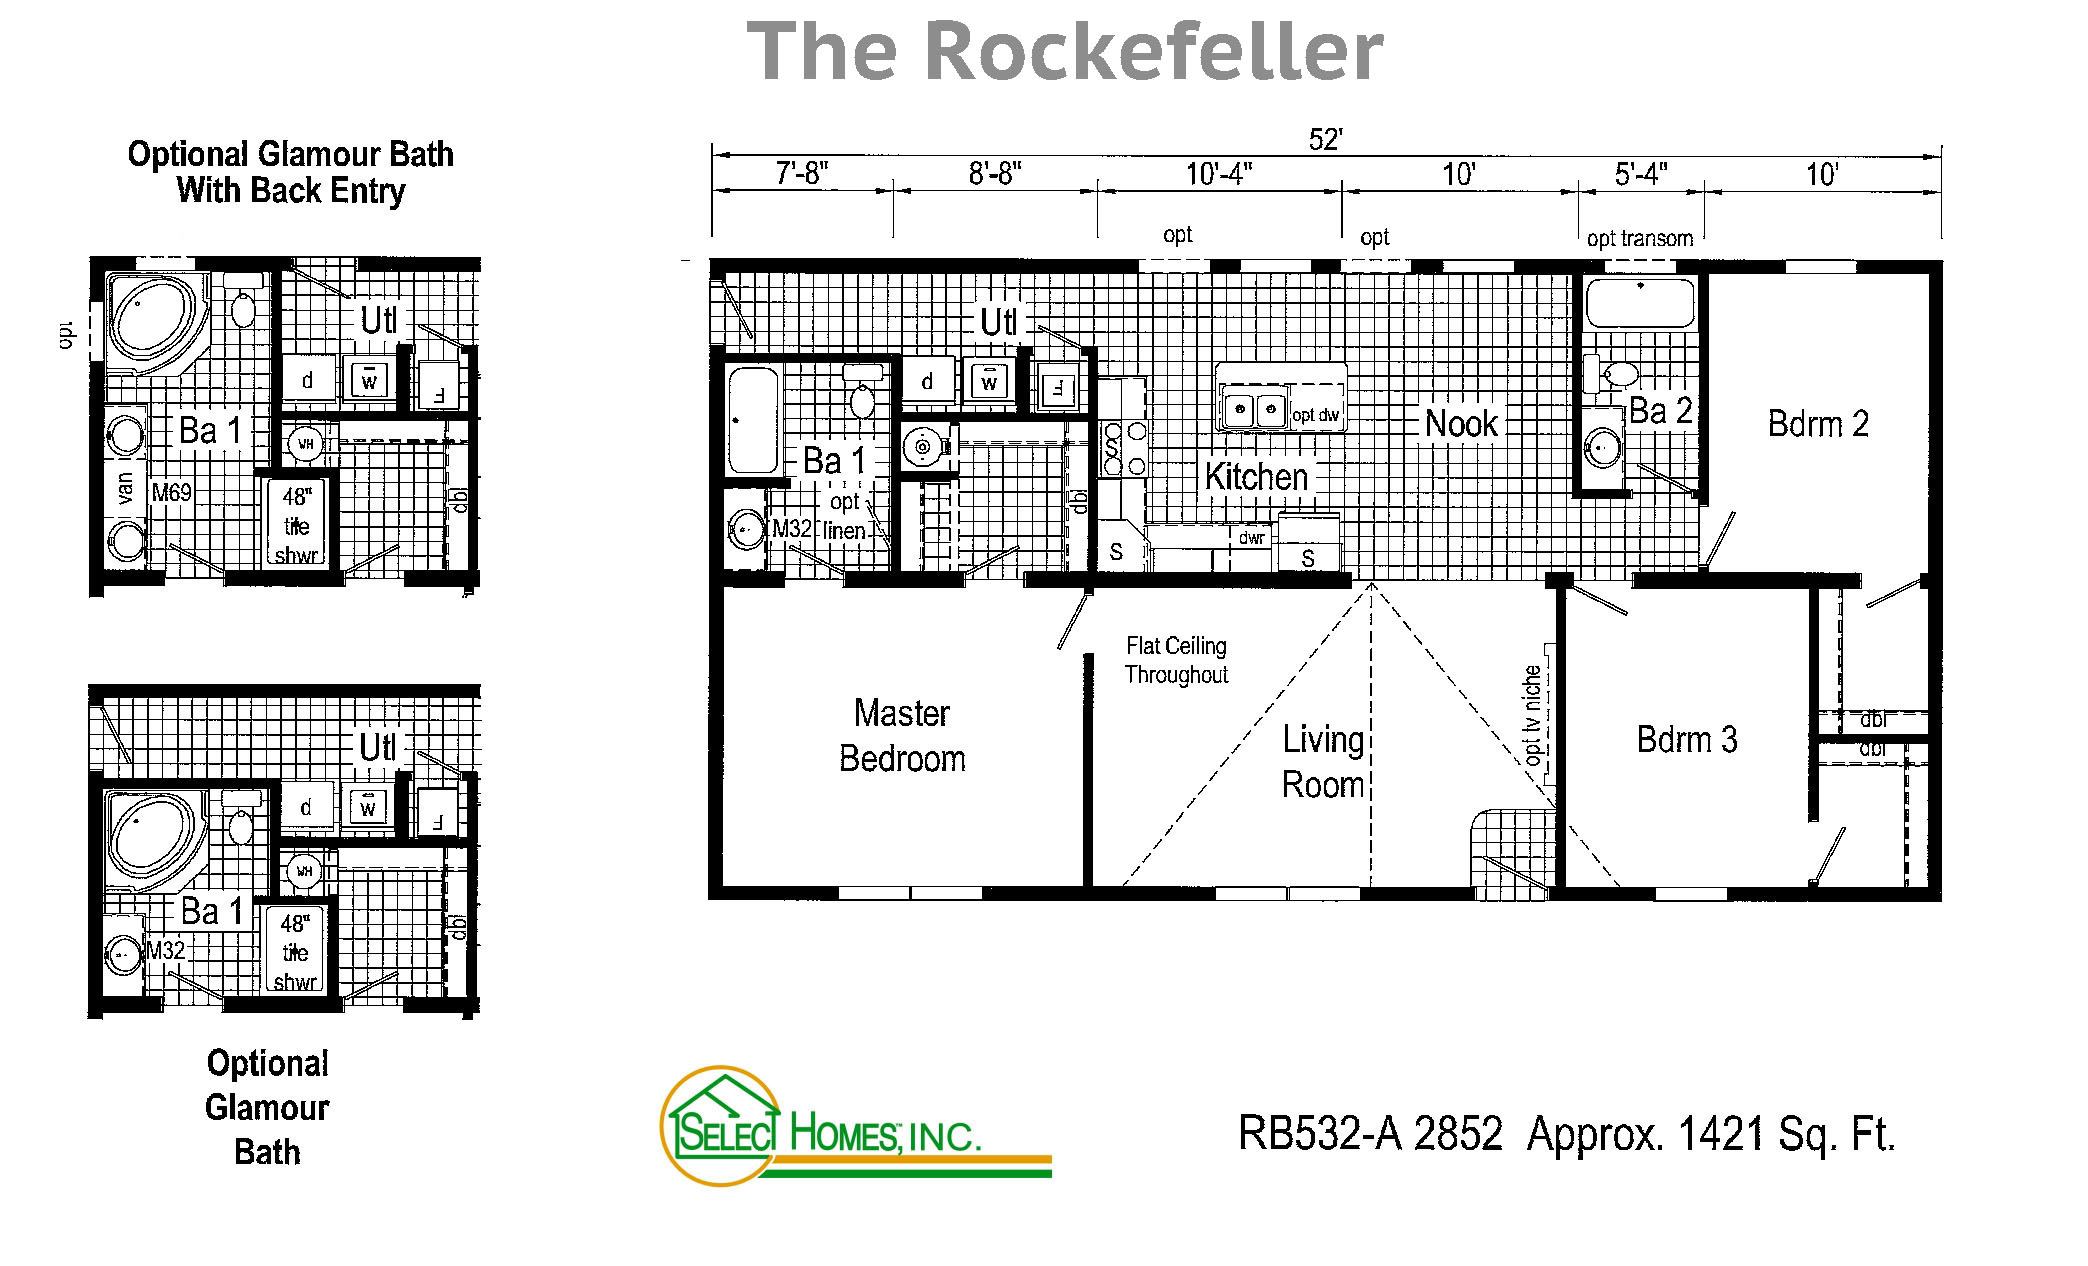 Rockefeller modular home floor plans by select homes inc for Select floor plans